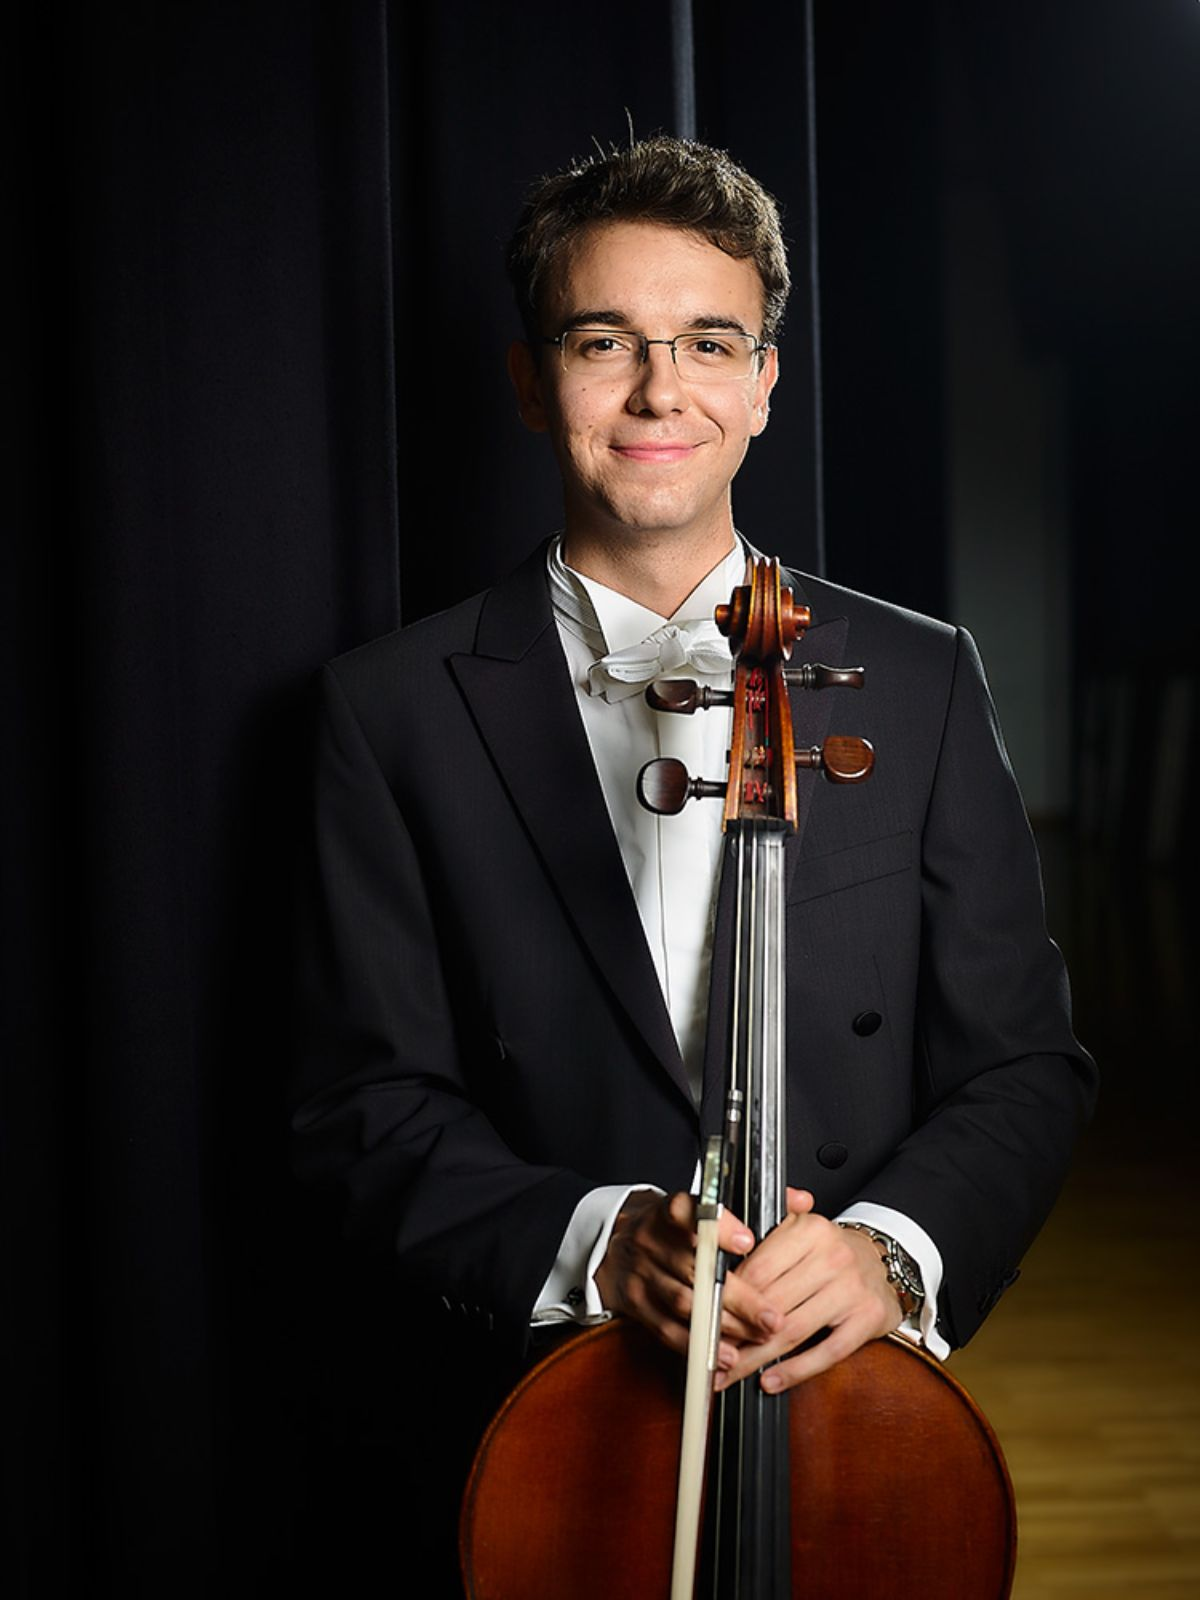 Malcolm Kraege, cello